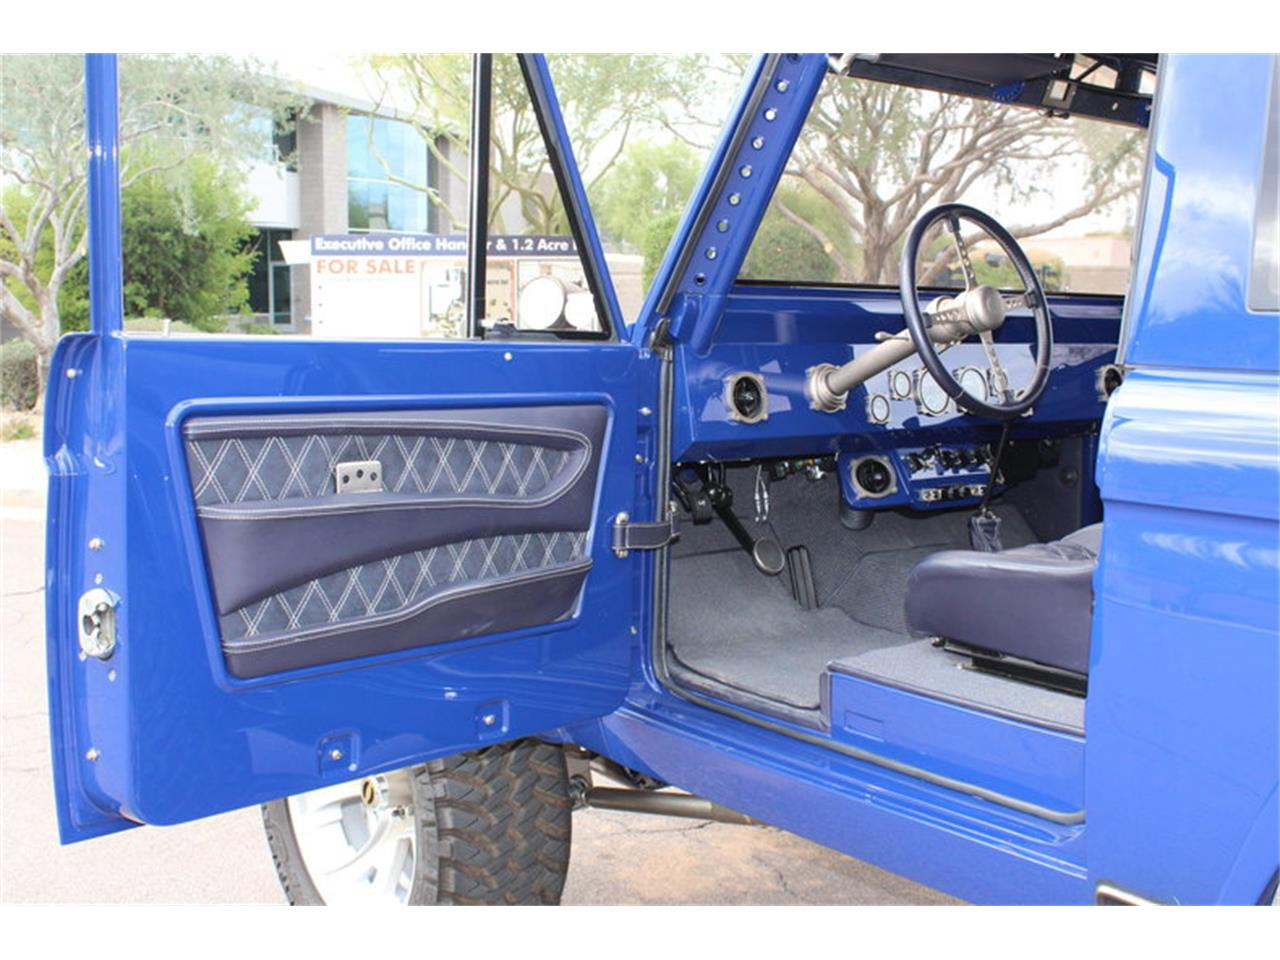 Large Picture of 1974 Bronco located in Park Hills Missouri Auction Vehicle - NANR